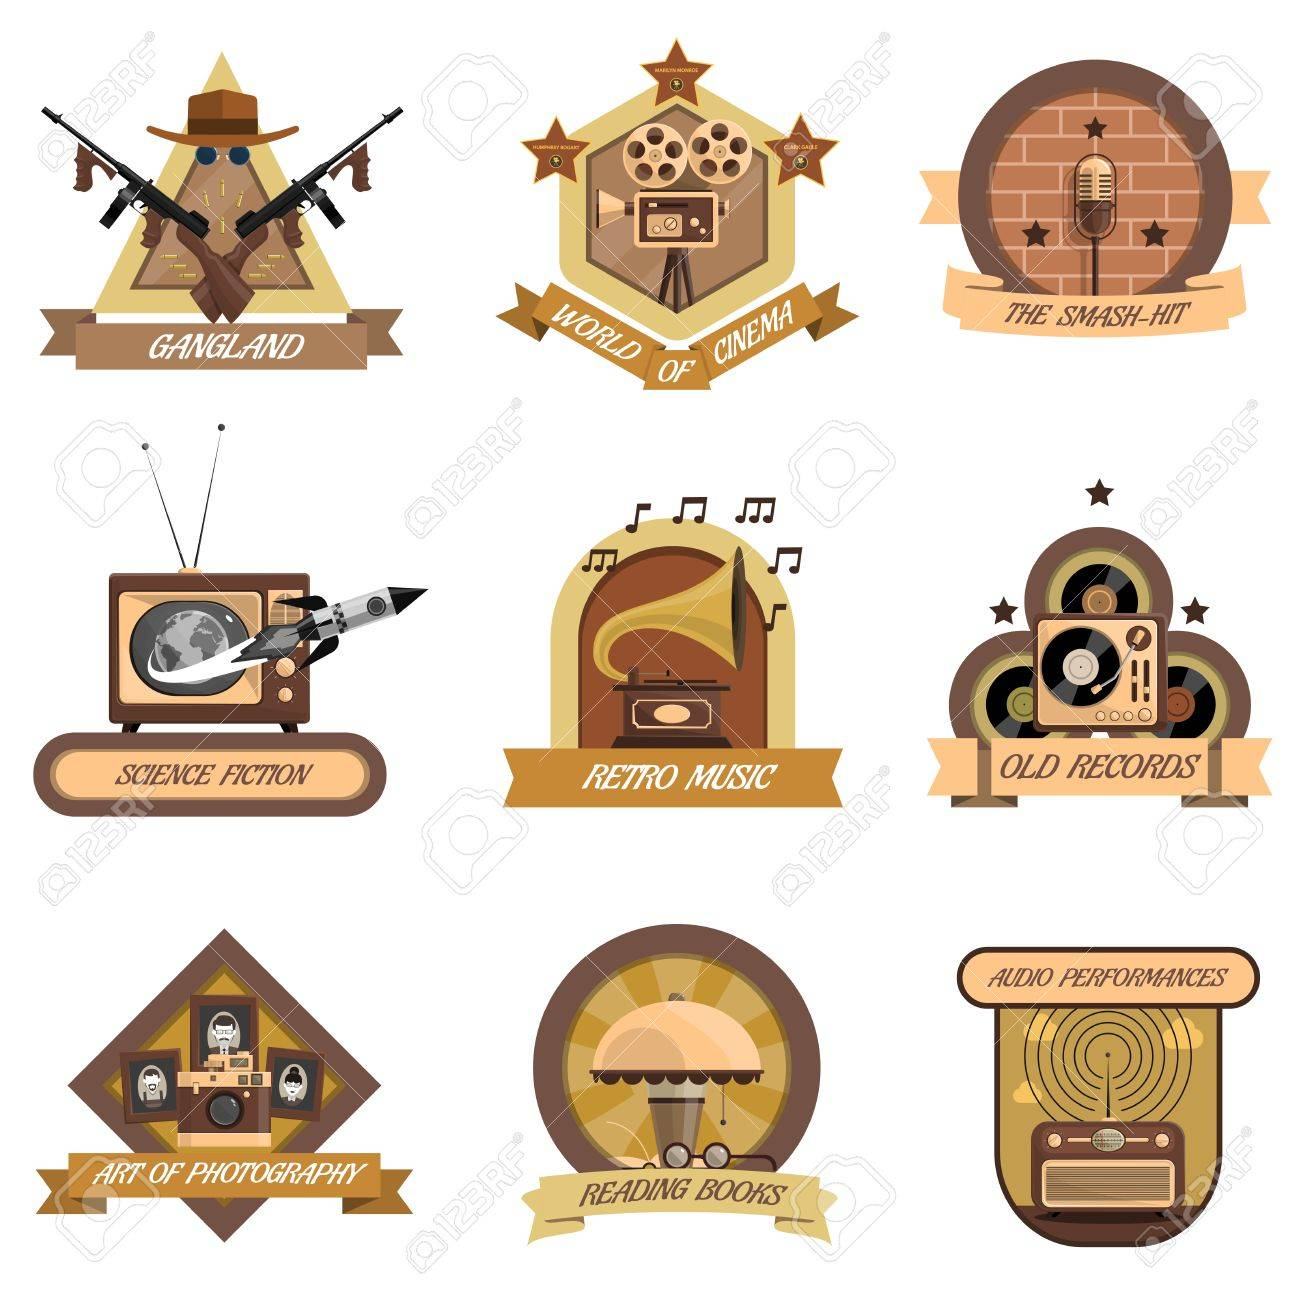 Retro emblems set with world of cinema and old records symbols retro emblems set with world of cinema and old records symbols flat isolated vector illustration stock biocorpaavc Choice Image